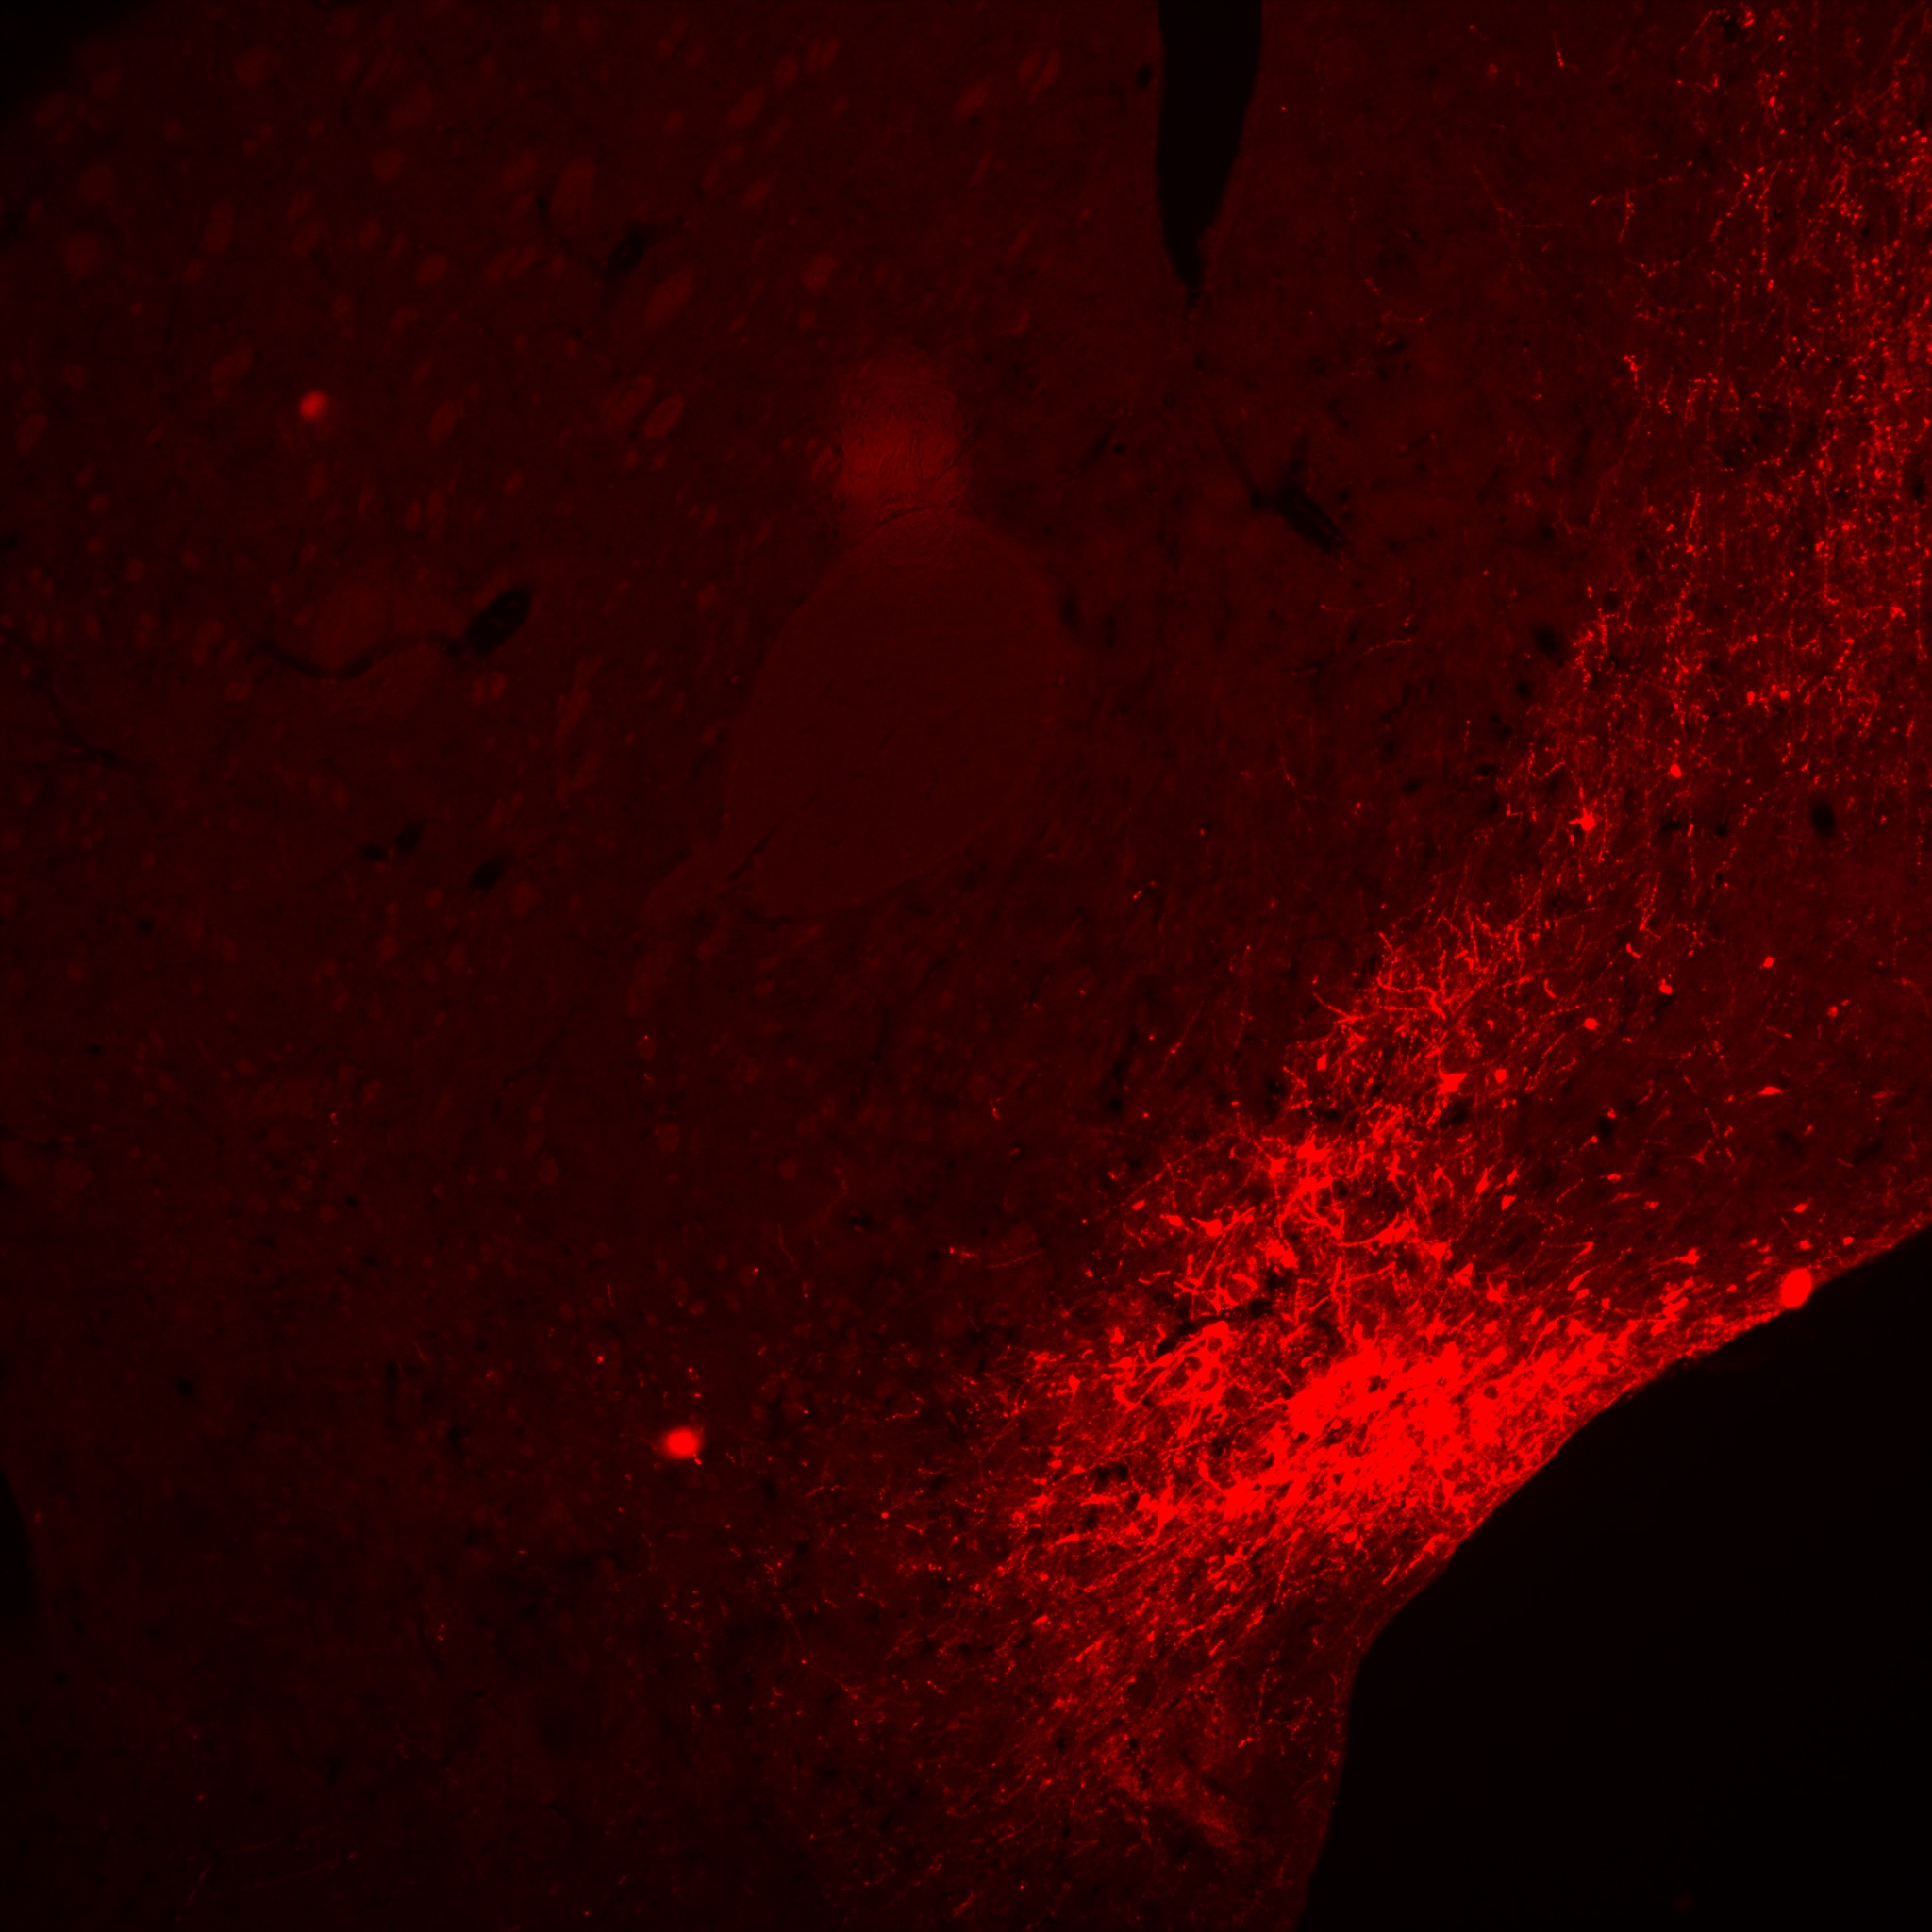 anti-mCherry (tag for DIO-hM4D(Gi) AAV) in red, bright field/fluorescent microscope, 5x objective